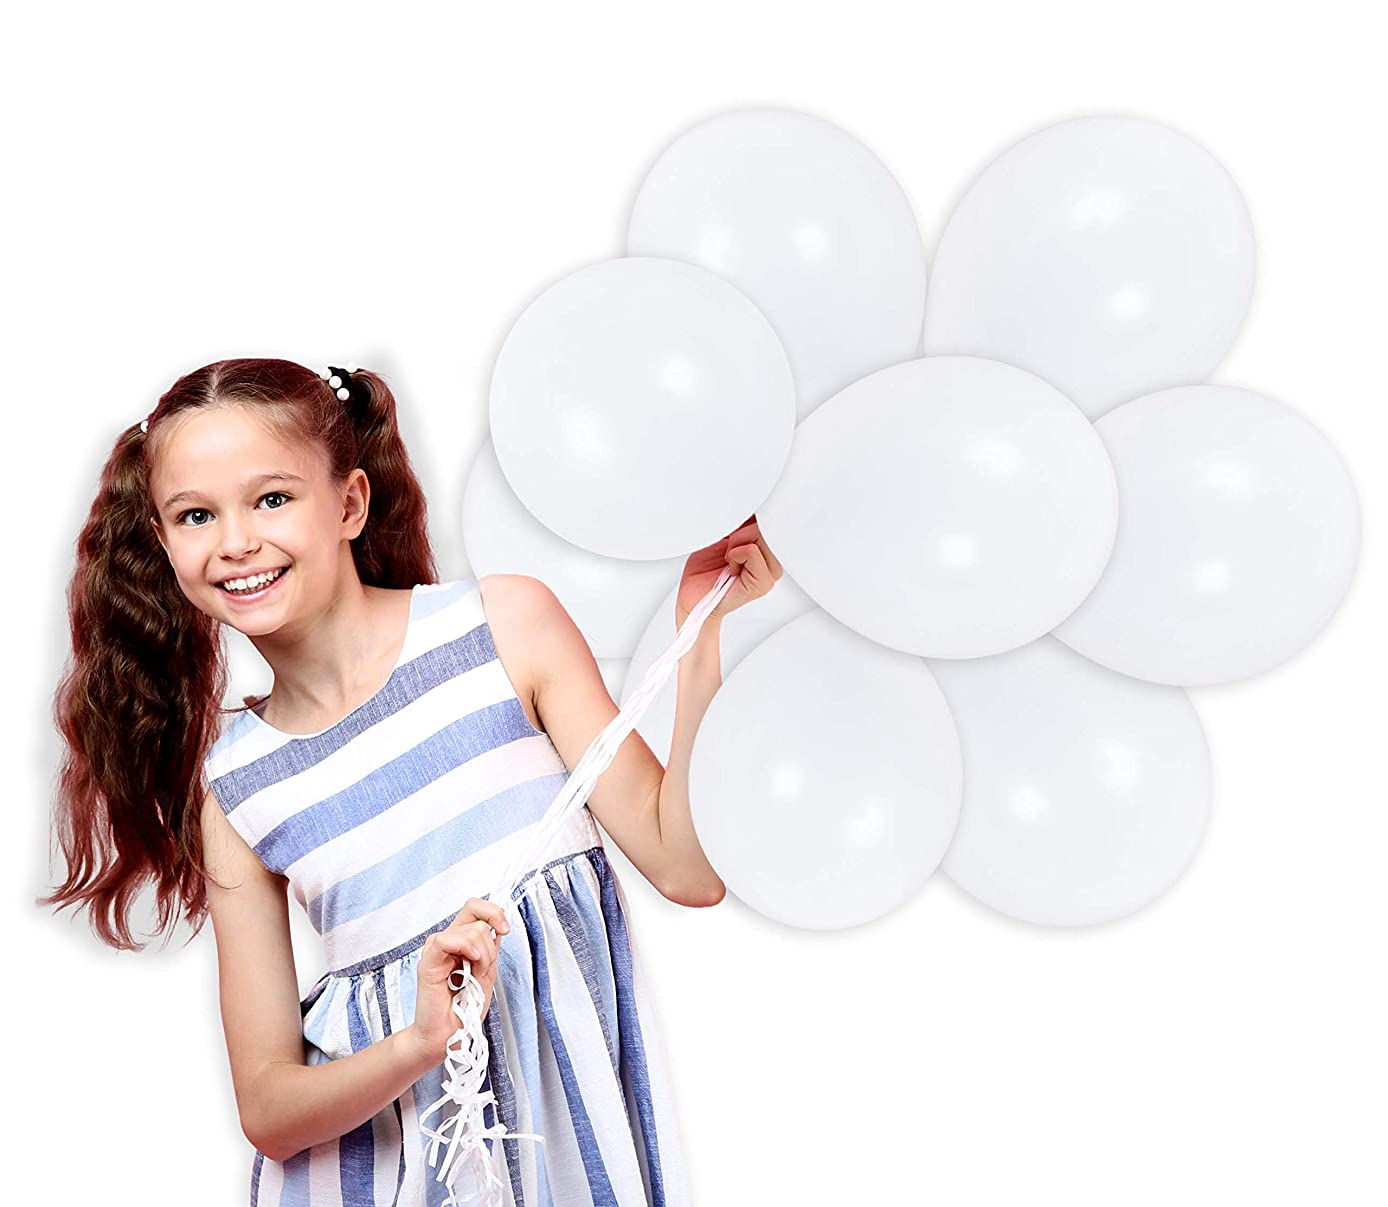 Pearl White Solid Latex Balloons 100 Pack Graduation Party Supplies Premium Quality for Arch Column Stand School Wedding Baby Shower Birthday Party Decorations